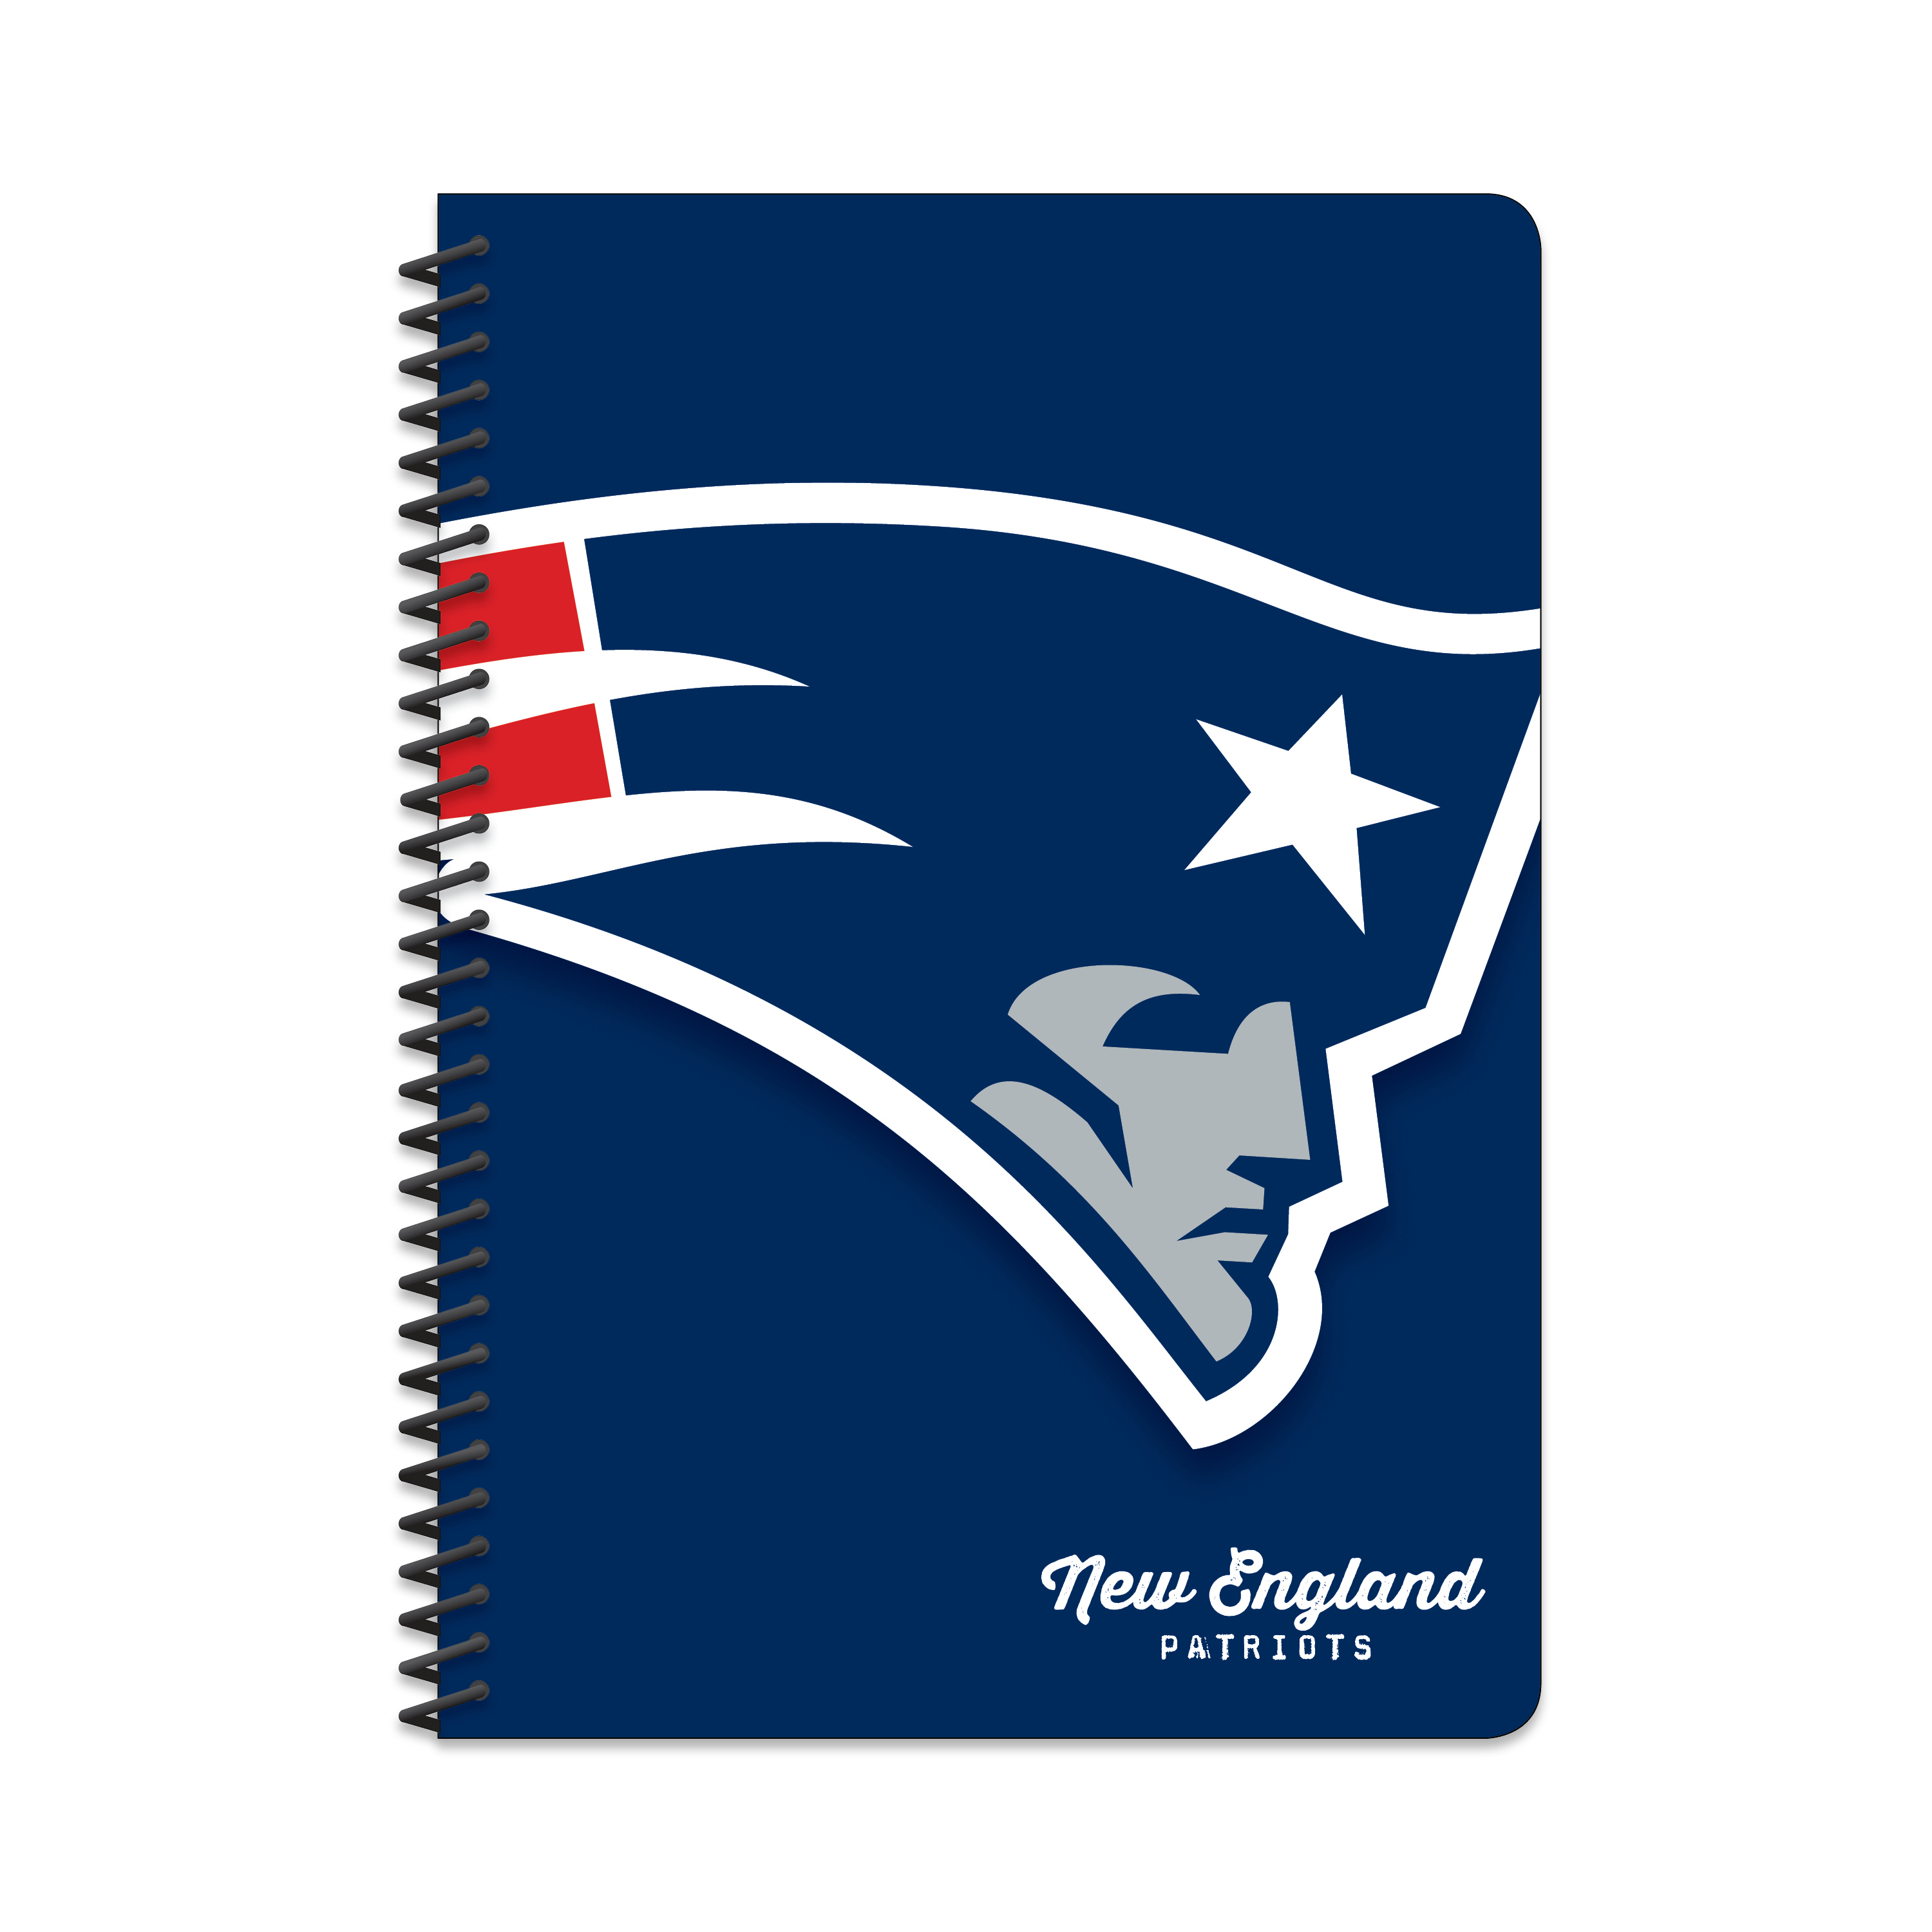 NEW ENGLAND PATRIOTS CLASSIC 5X7 NOTEBOOK